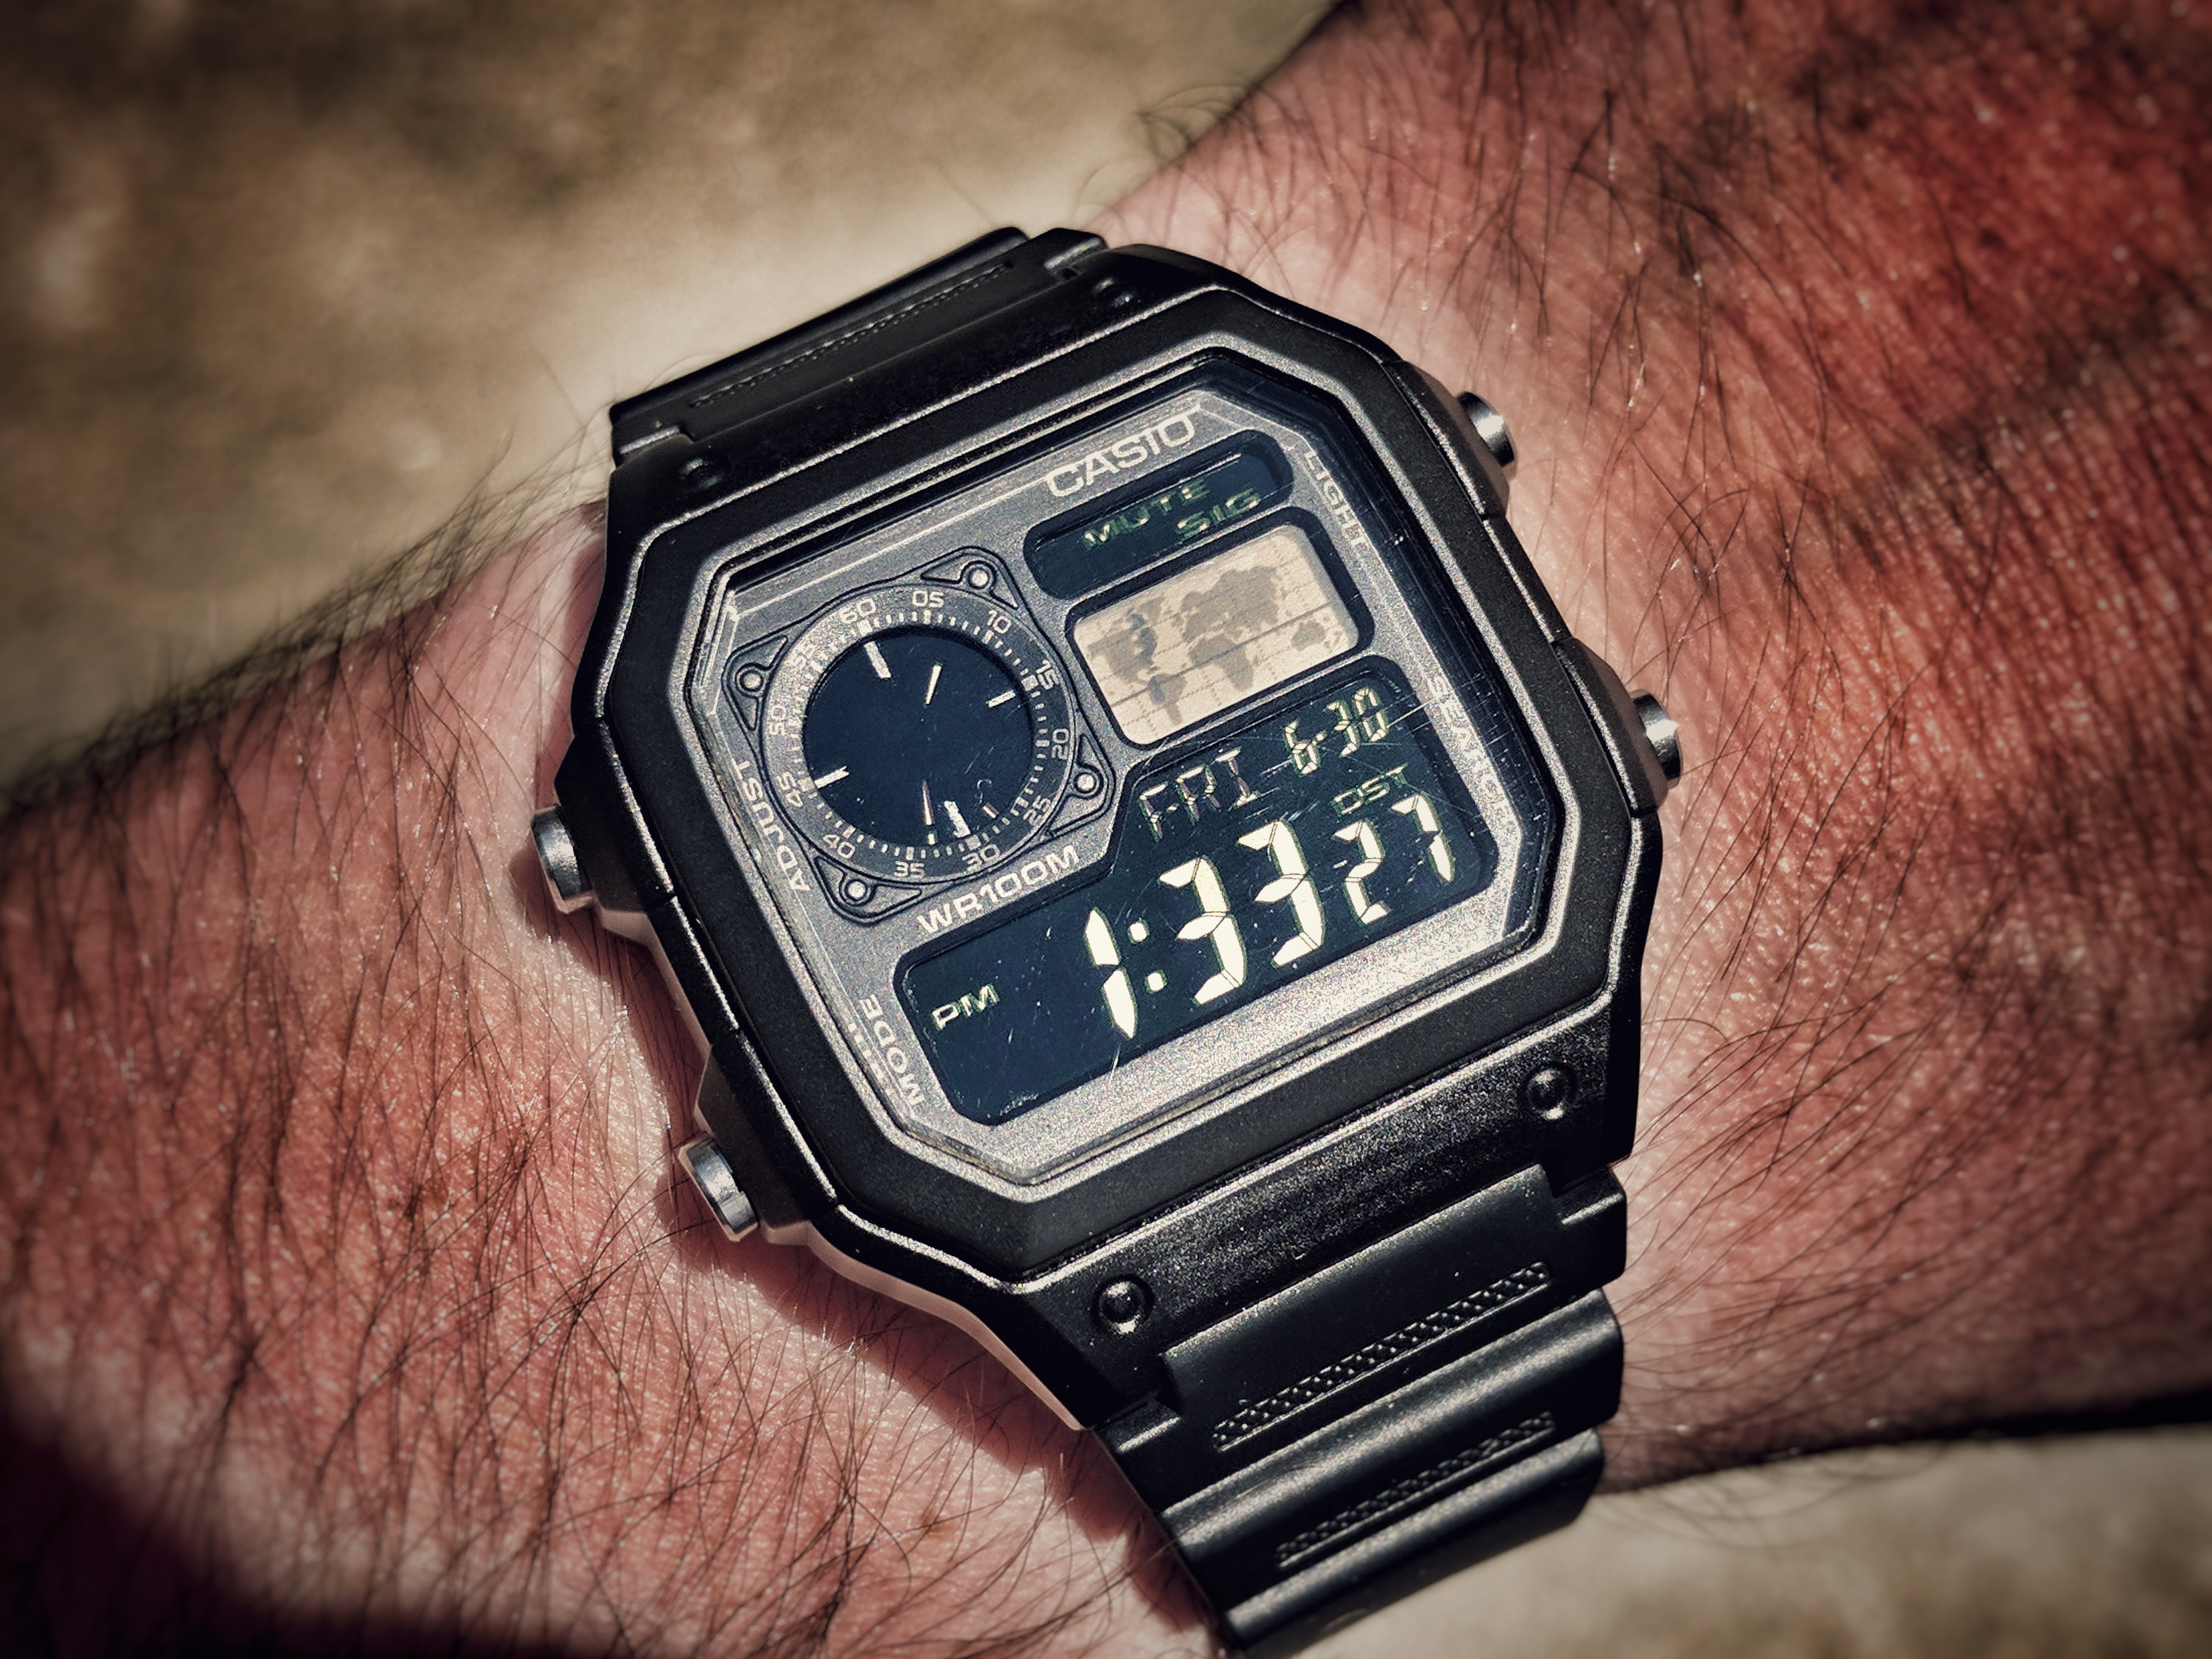 Casio Ae1200 Stealth Mod Project World Time Ae 1200whd 1a Original Now I Just Have To Find The Feeling Punny Please Vote For Led Color If You Havent Already Im Leaning Toward Red